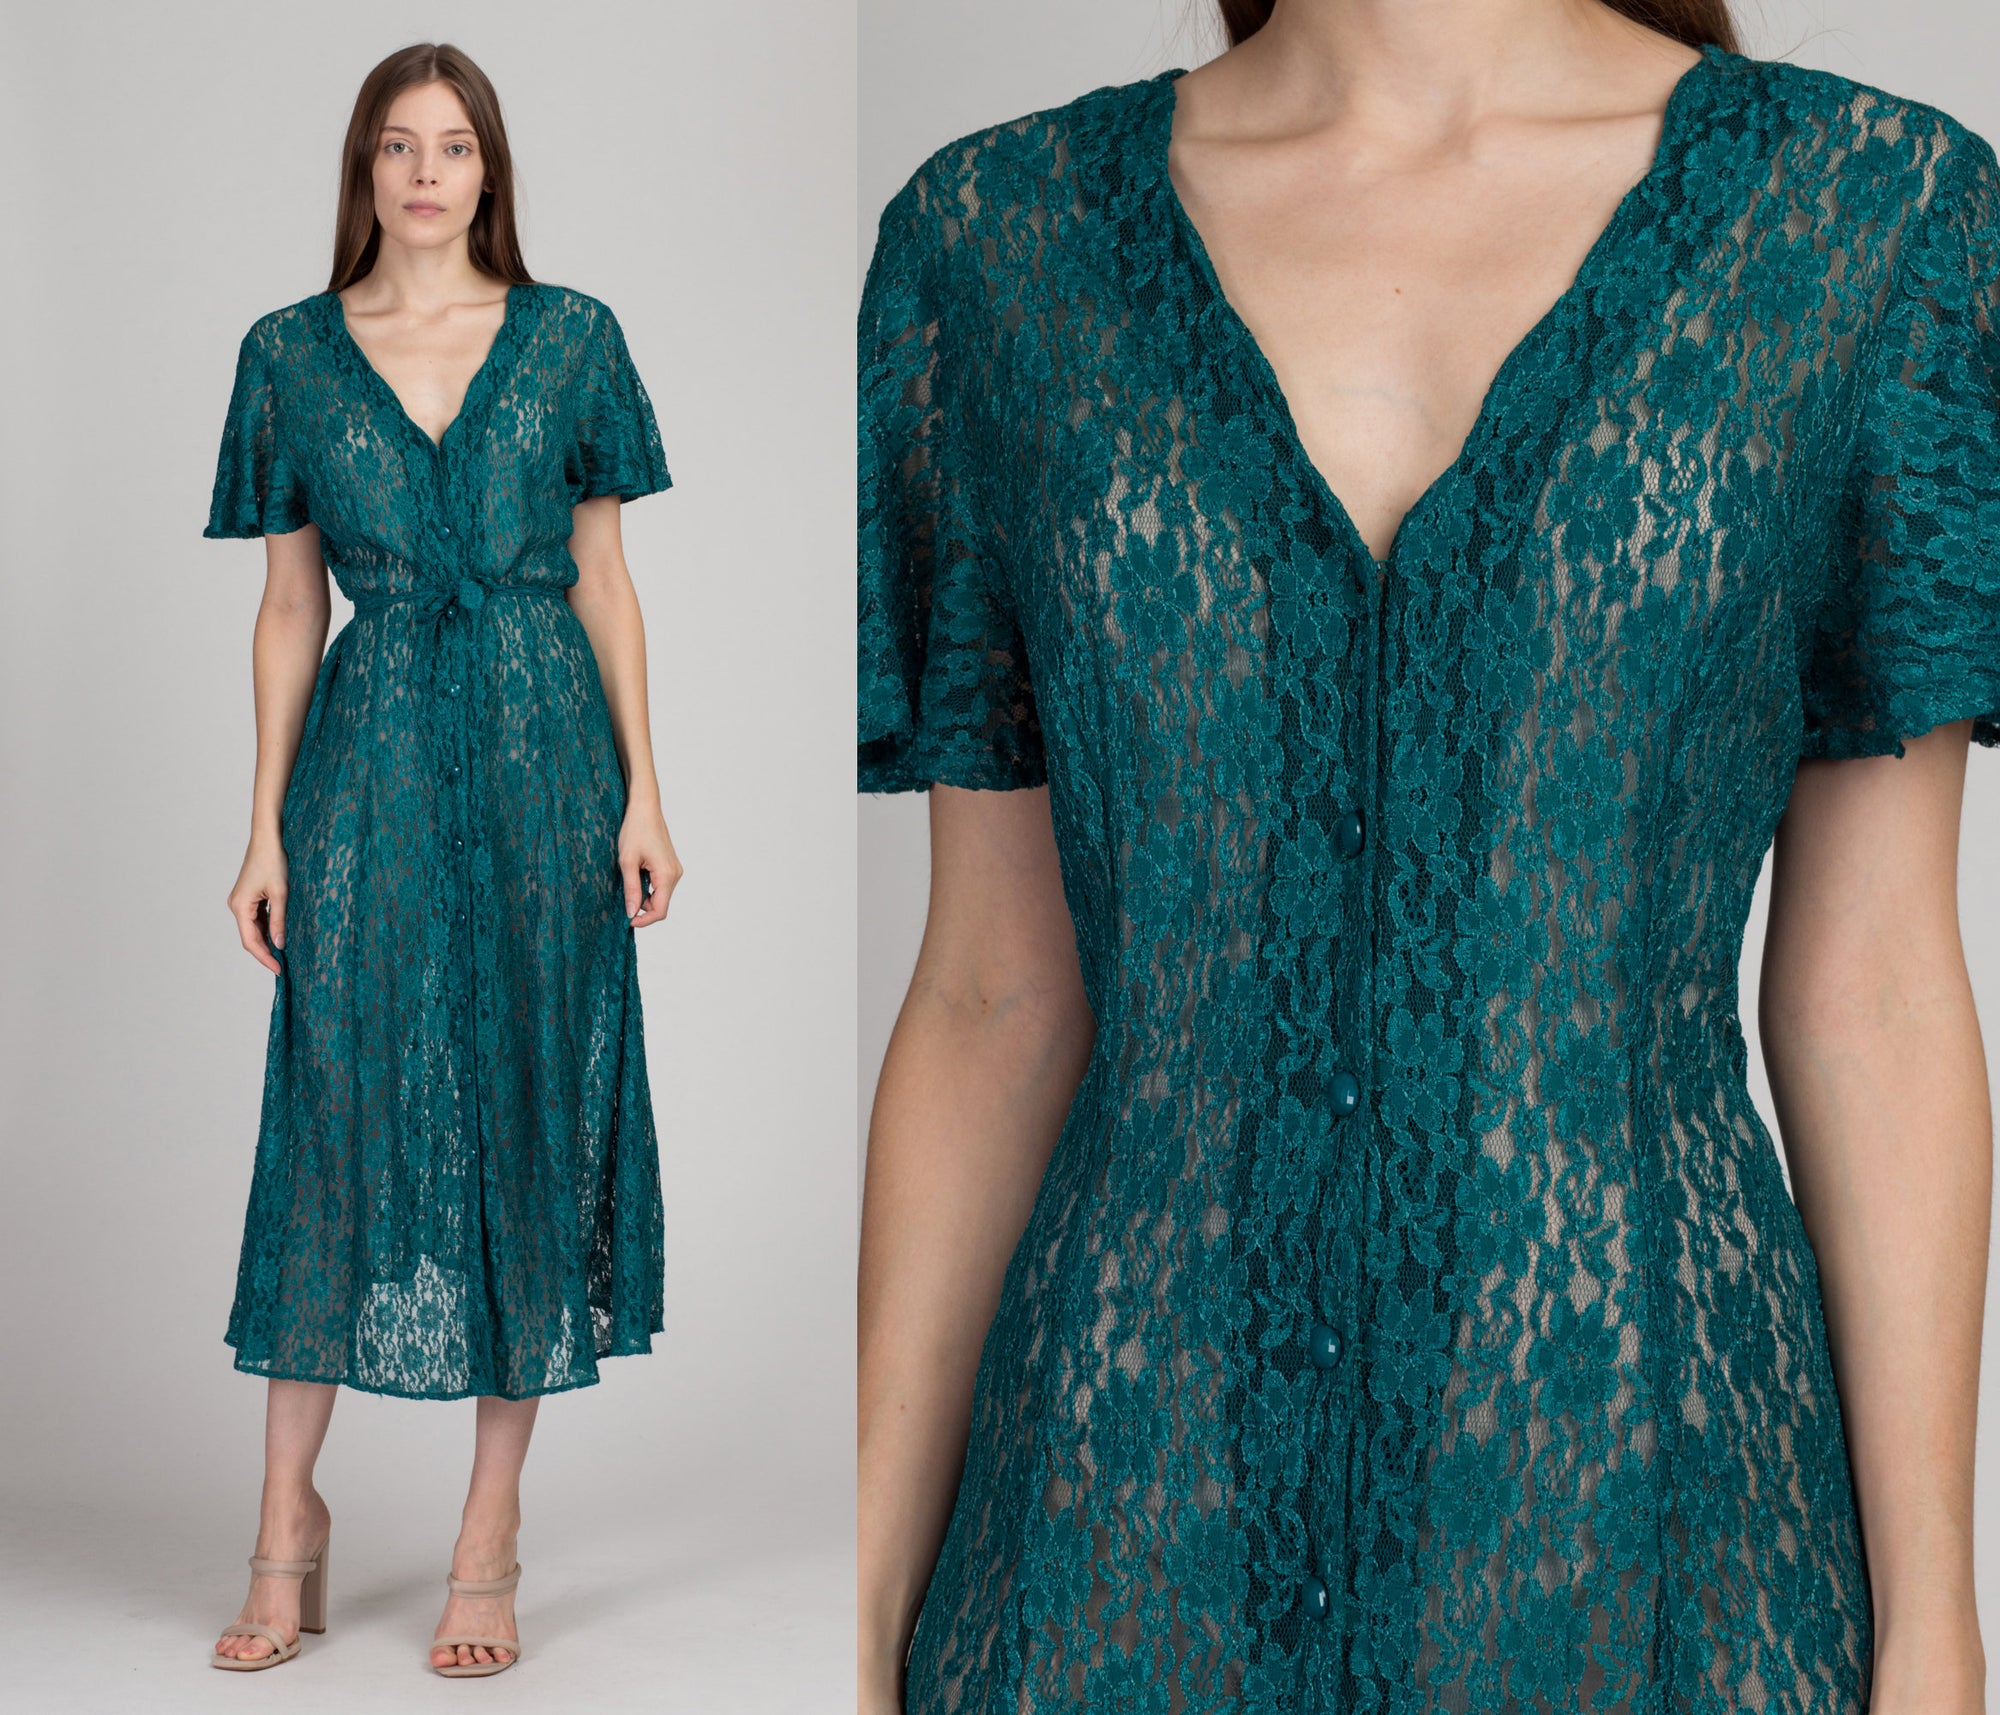 90s Sheer Jade Lace Summer Dress - Medium to Large | Vintage Floral Grunge Festival Maxi Sundress